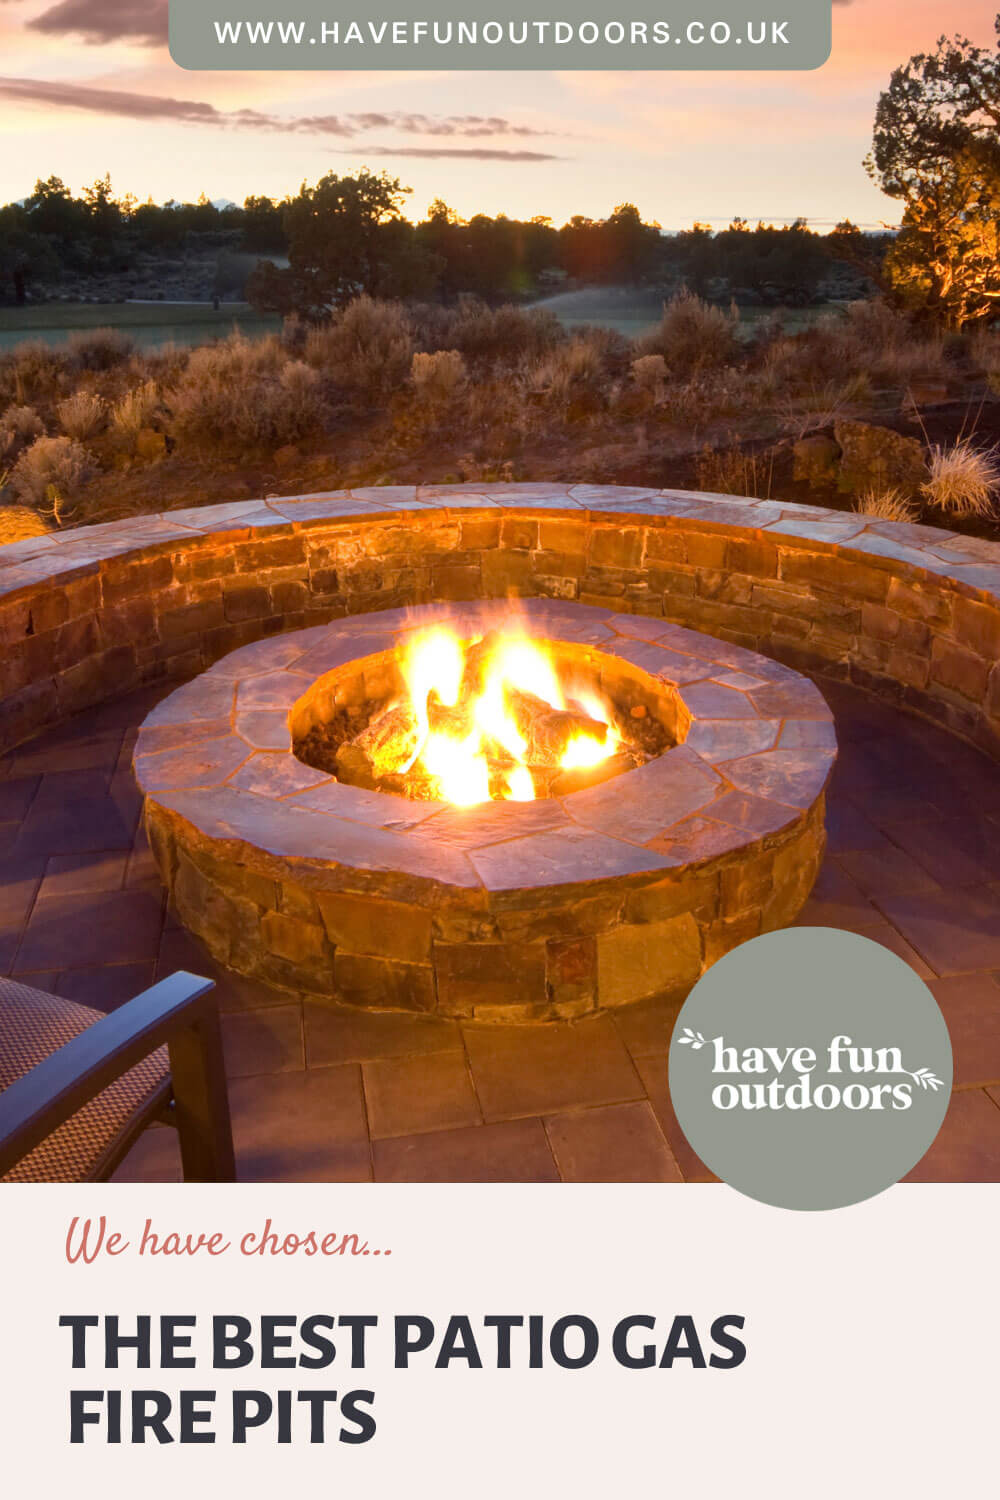 8 Of The Best Patio Gas Fire Pits For Your Garden